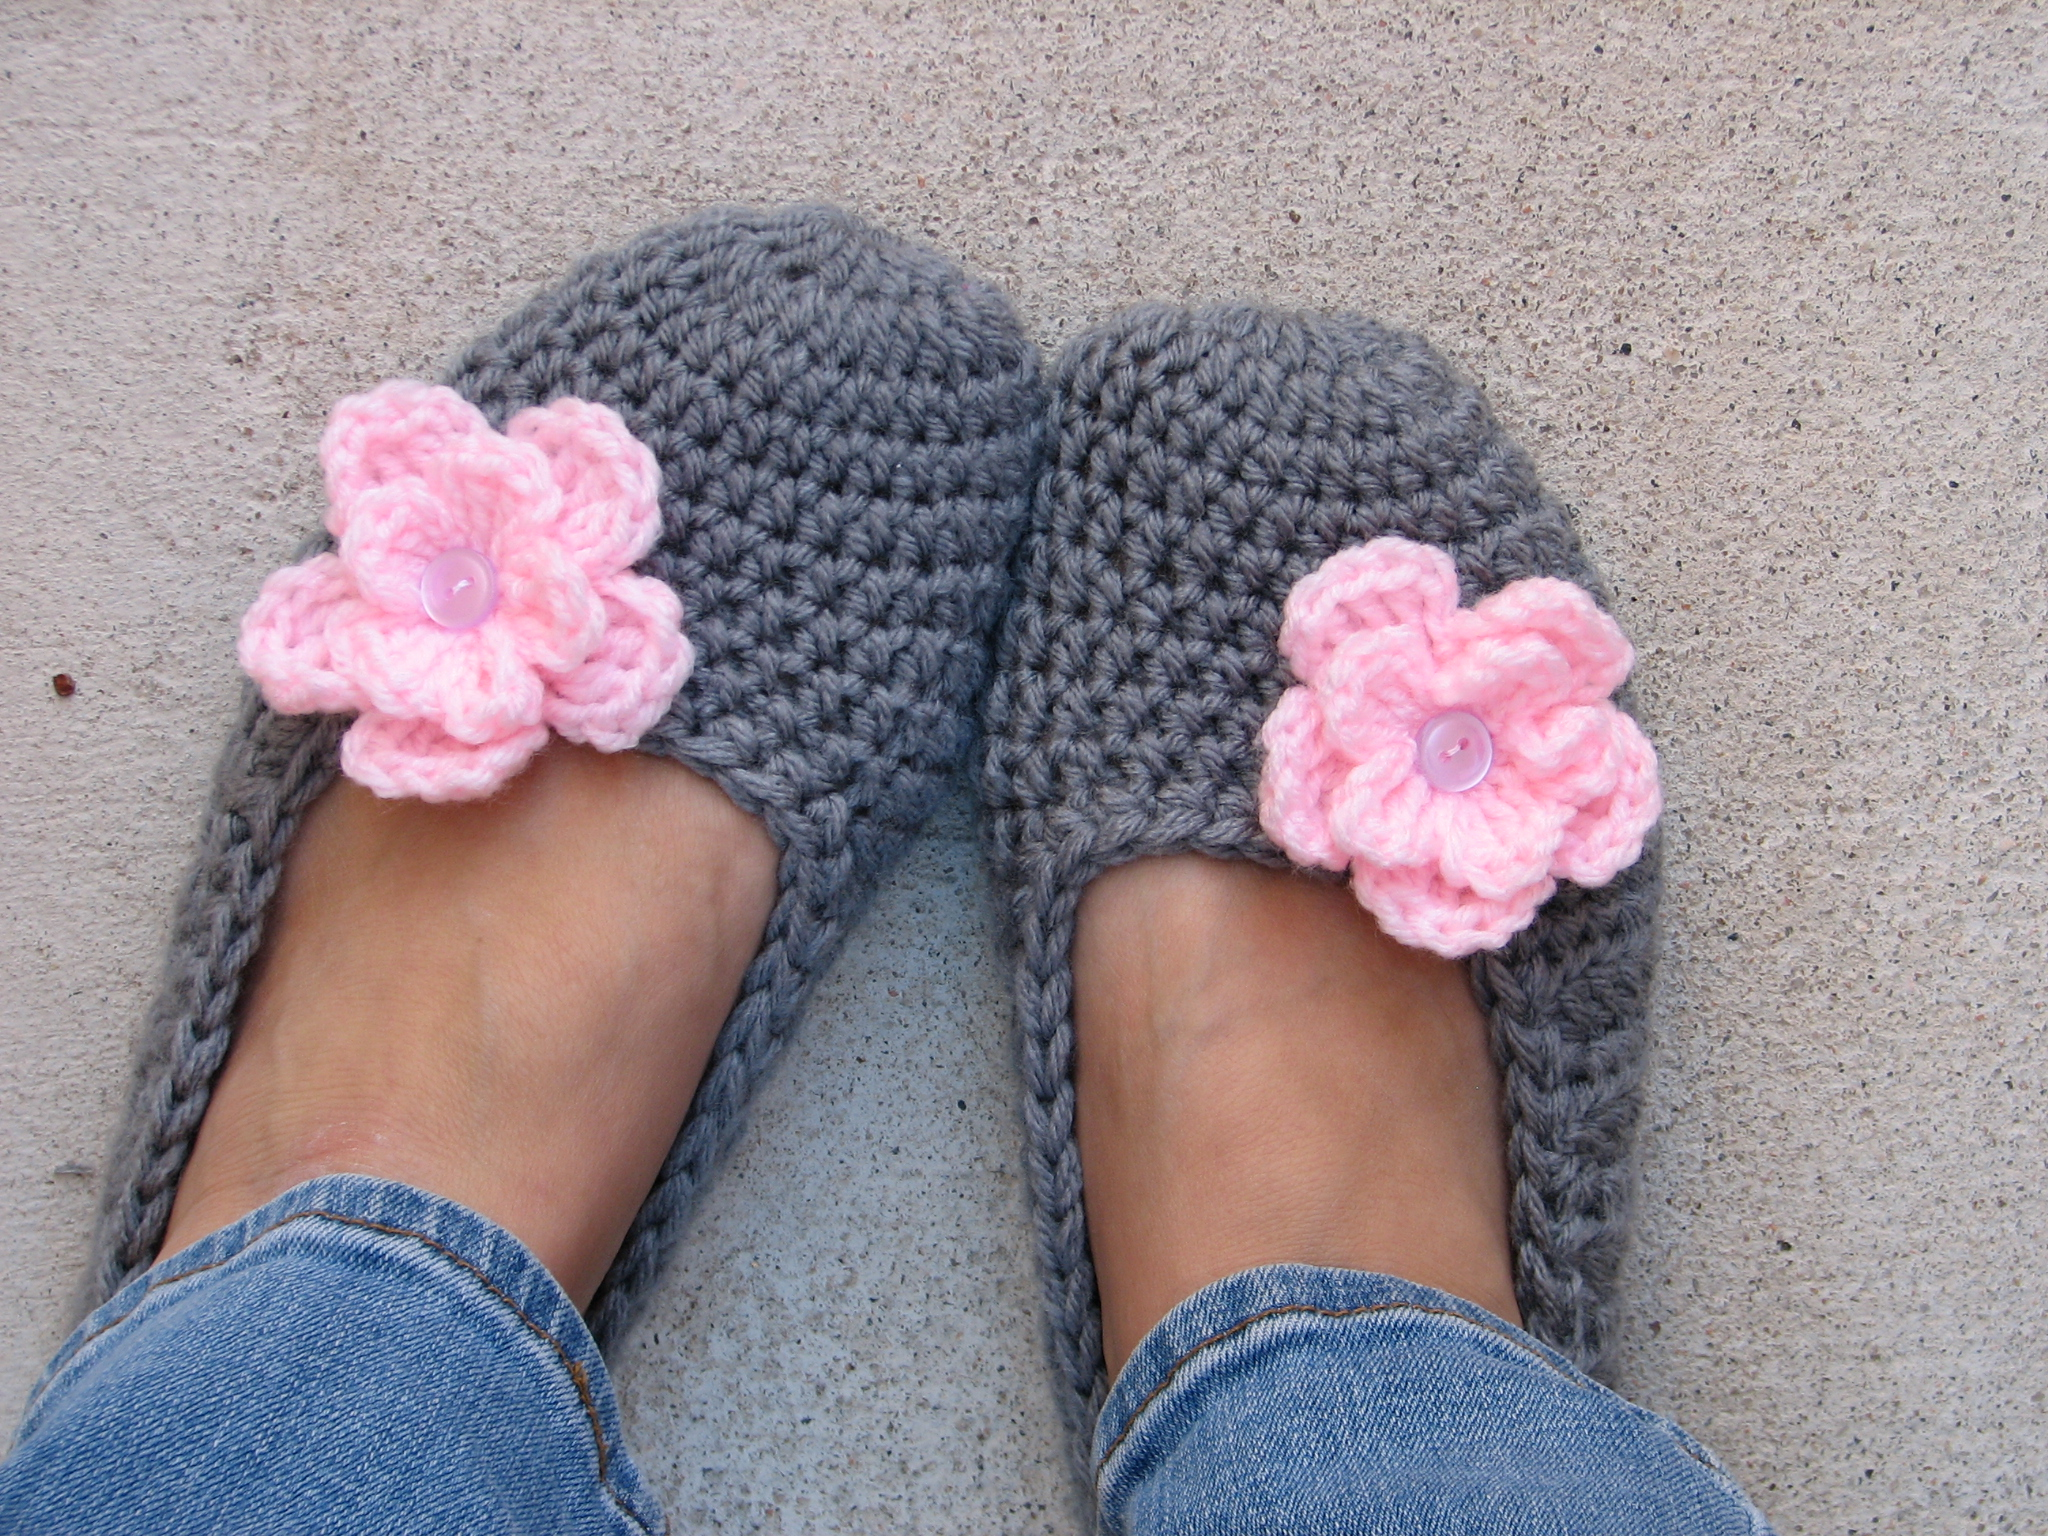 Free Crochet Patterns Booties For Adults : Adult Slippers Crochet Pattern PDF,Easy, Great For ...